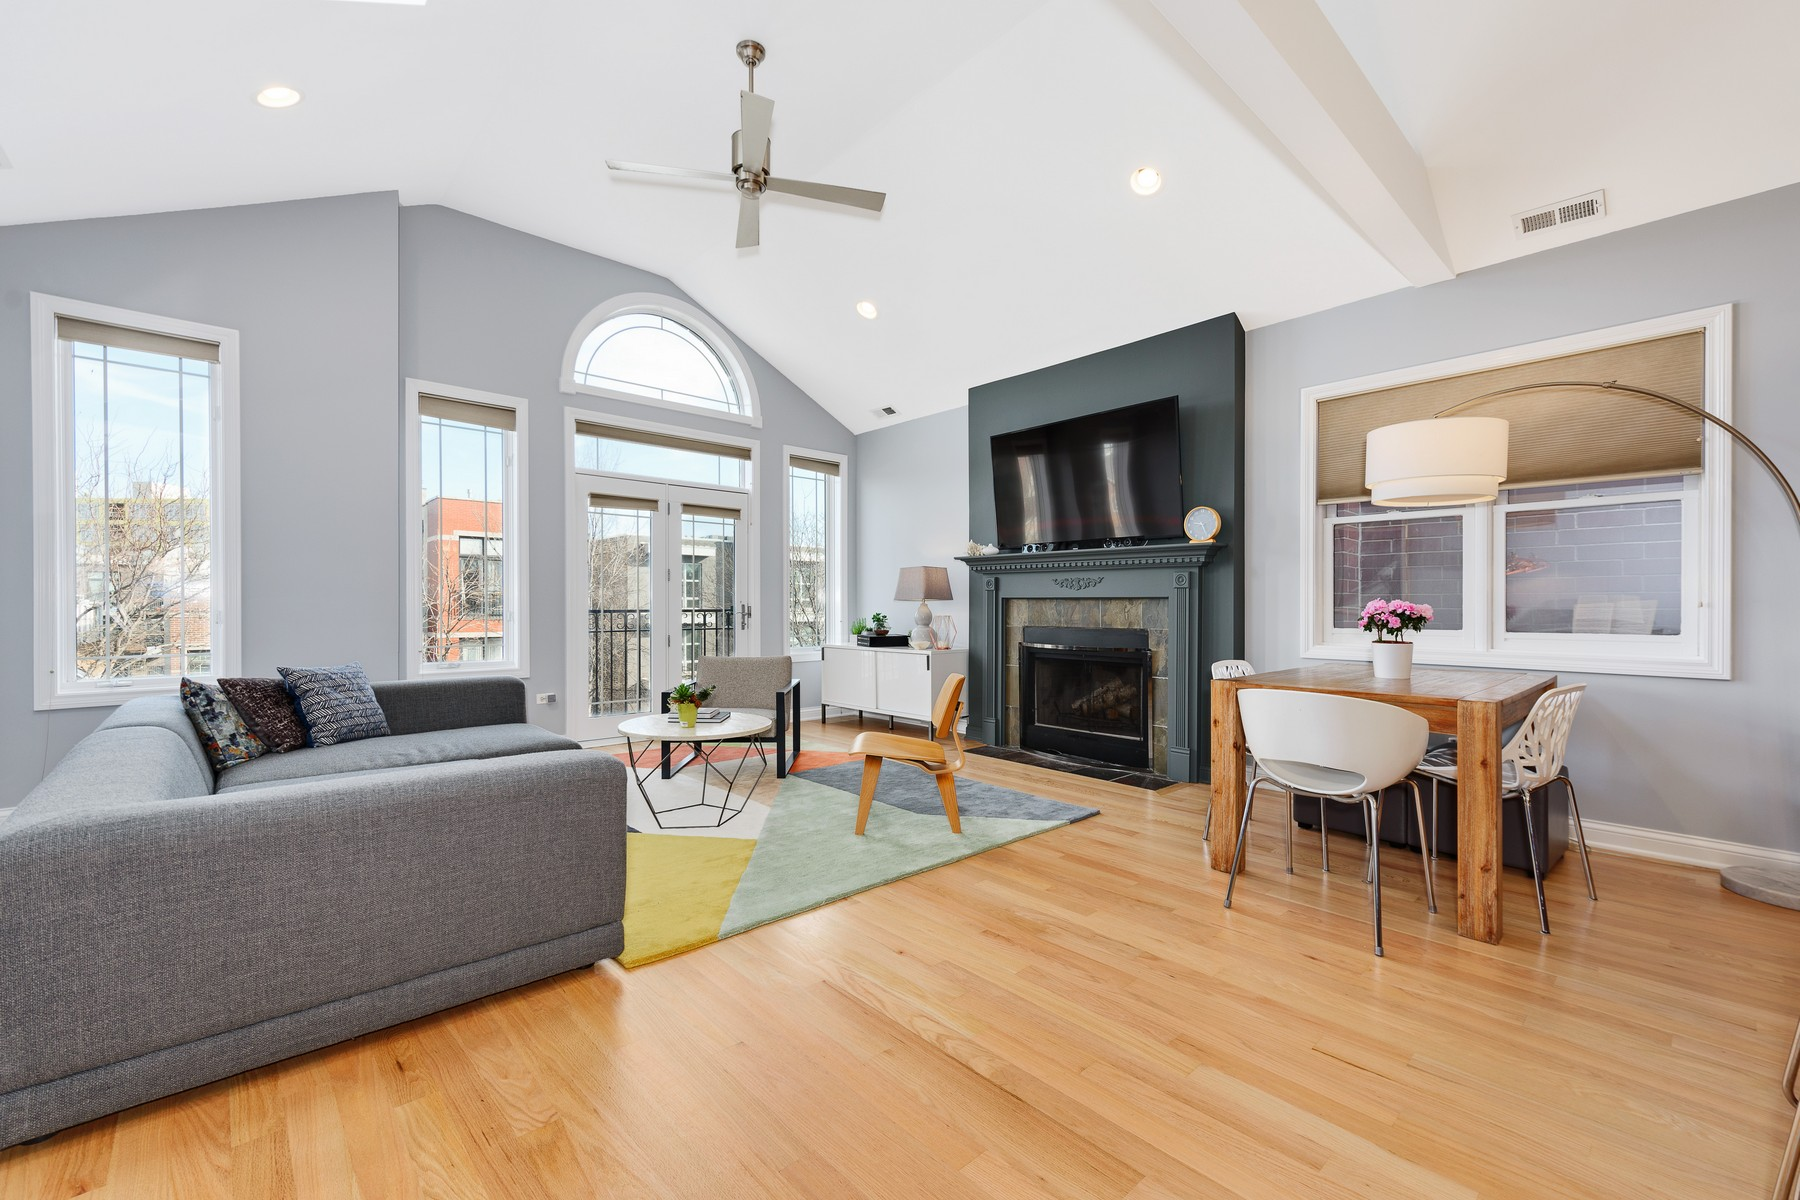 Single Family Home for Sale at Penthouse condo in all brick building in prime west Bucktown 2419 W Cortland Street Unit 3, Logan Square, Chicago, Illinois, 60647 United States